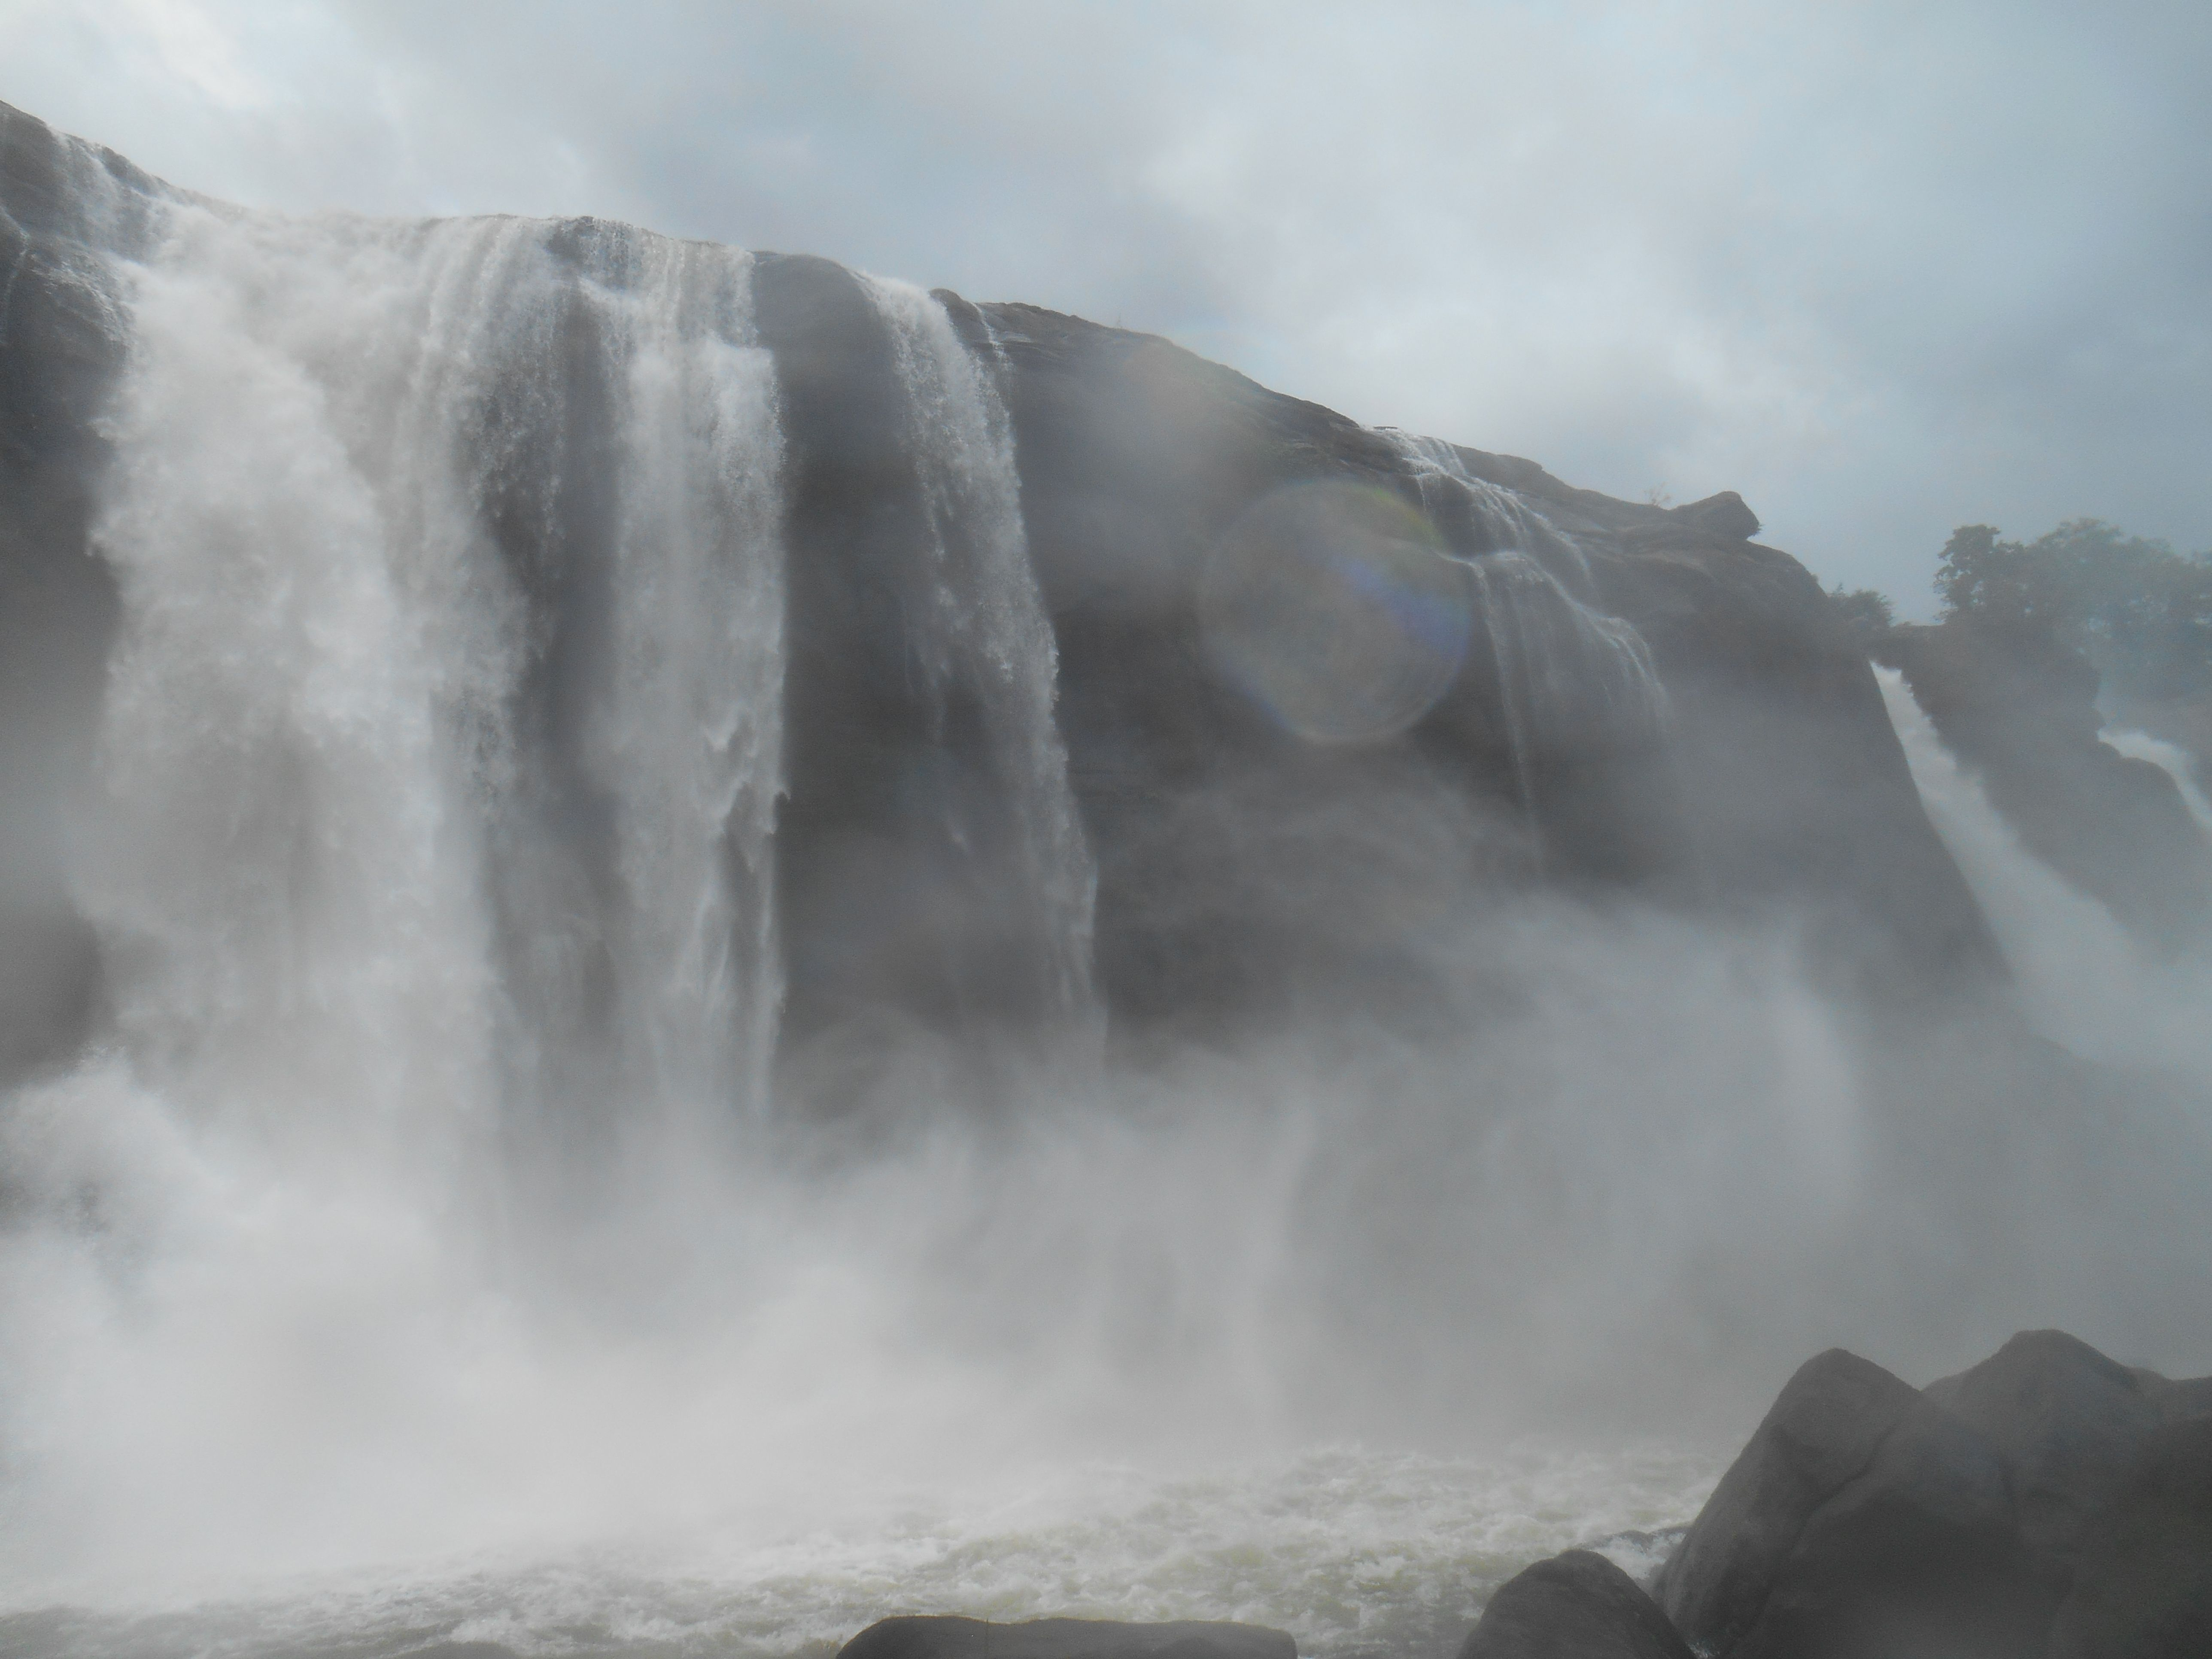 the Great Fall- Athirapally, more at http://trekkingindiana.blogspot.in/2015/11/the-magnificent-waterfall-athirapally.html#gpluscomments, video at https://www.youtube.com/watch?v=ld6ywx_JIQA